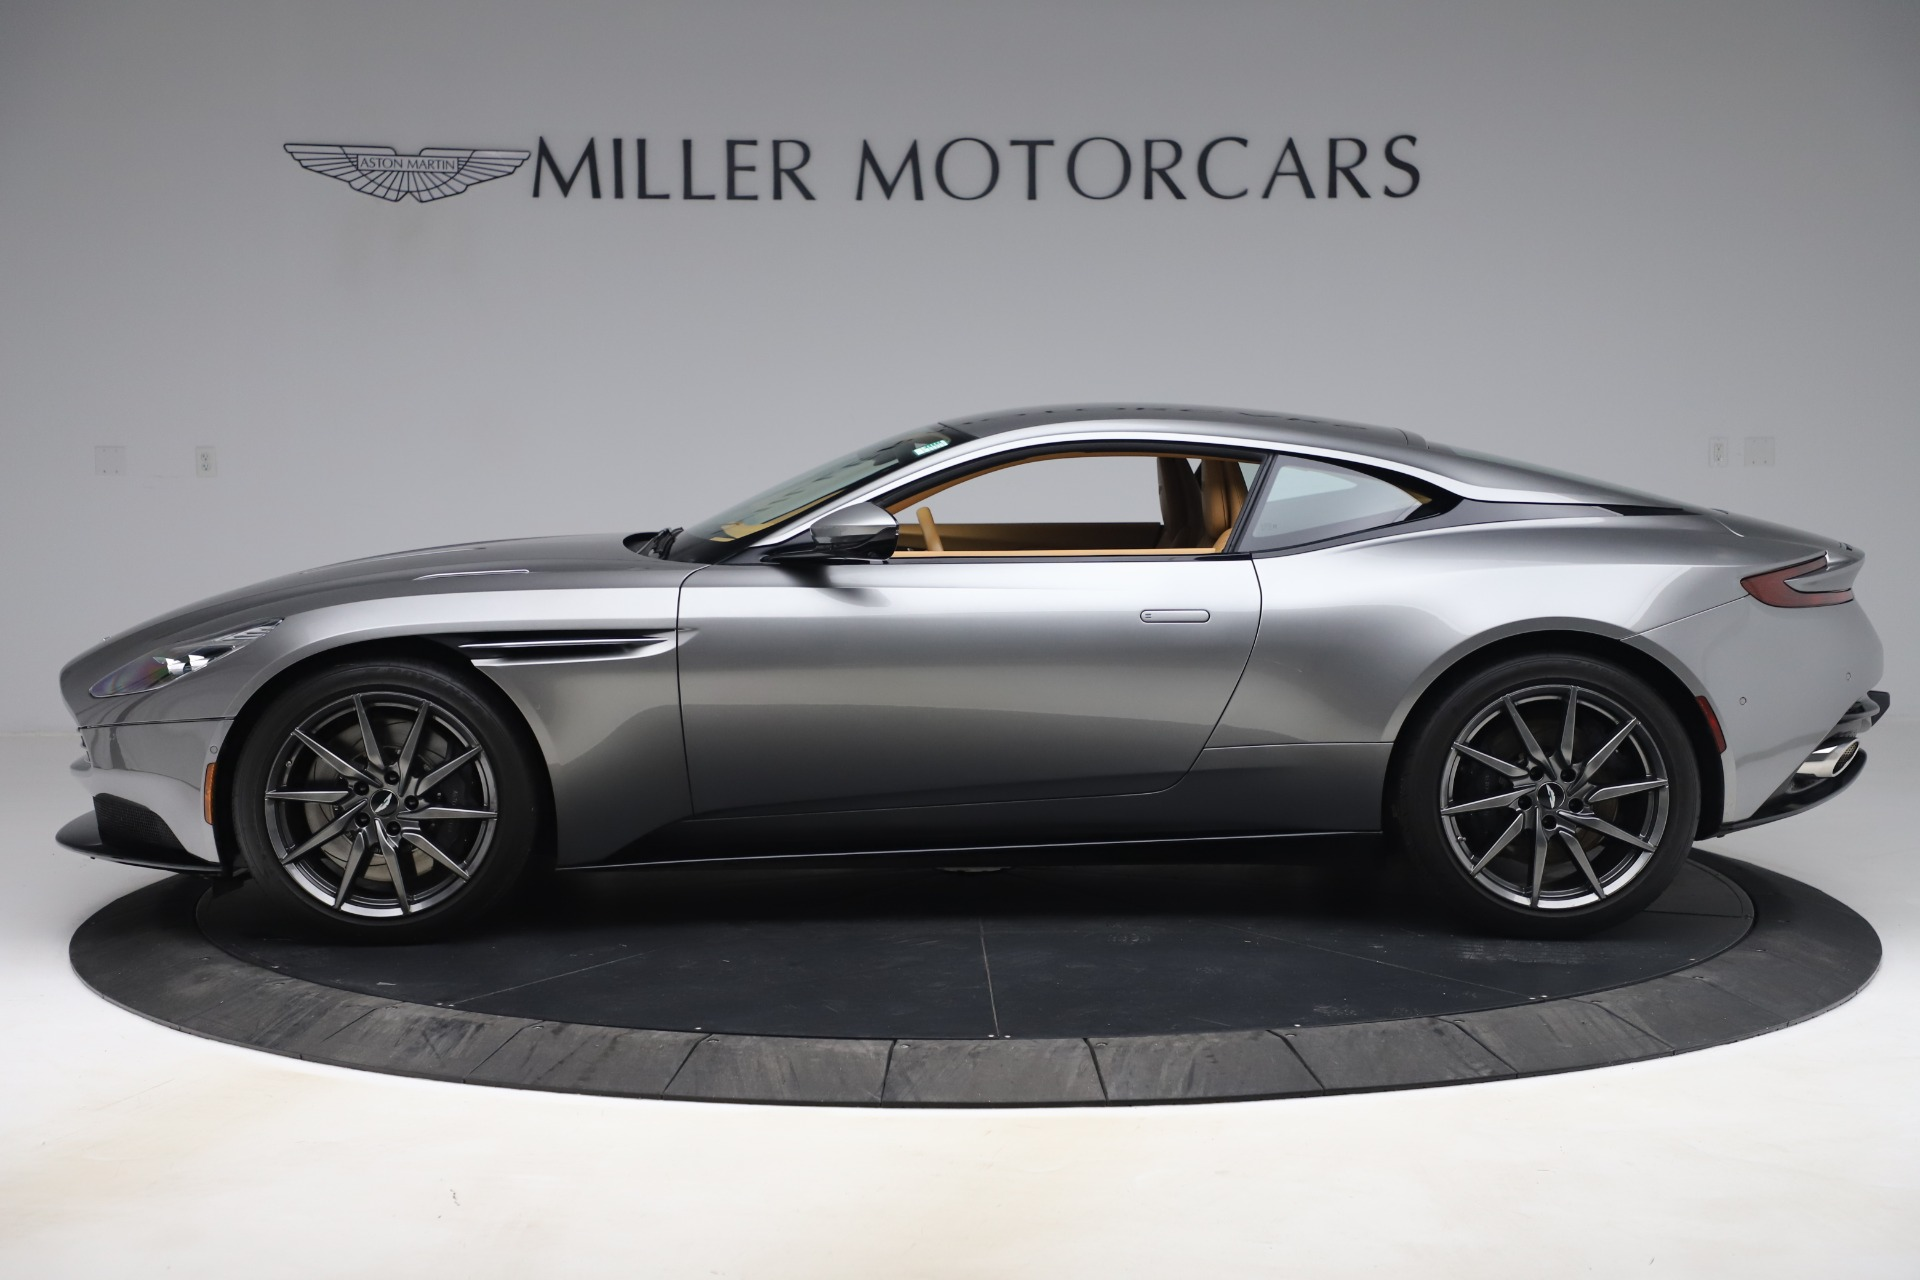 Pre Owned 2017 Aston Martin Db11 V12 Coupe For Sale 149 990 Aston Martin Of Greenwich Stock A1398a